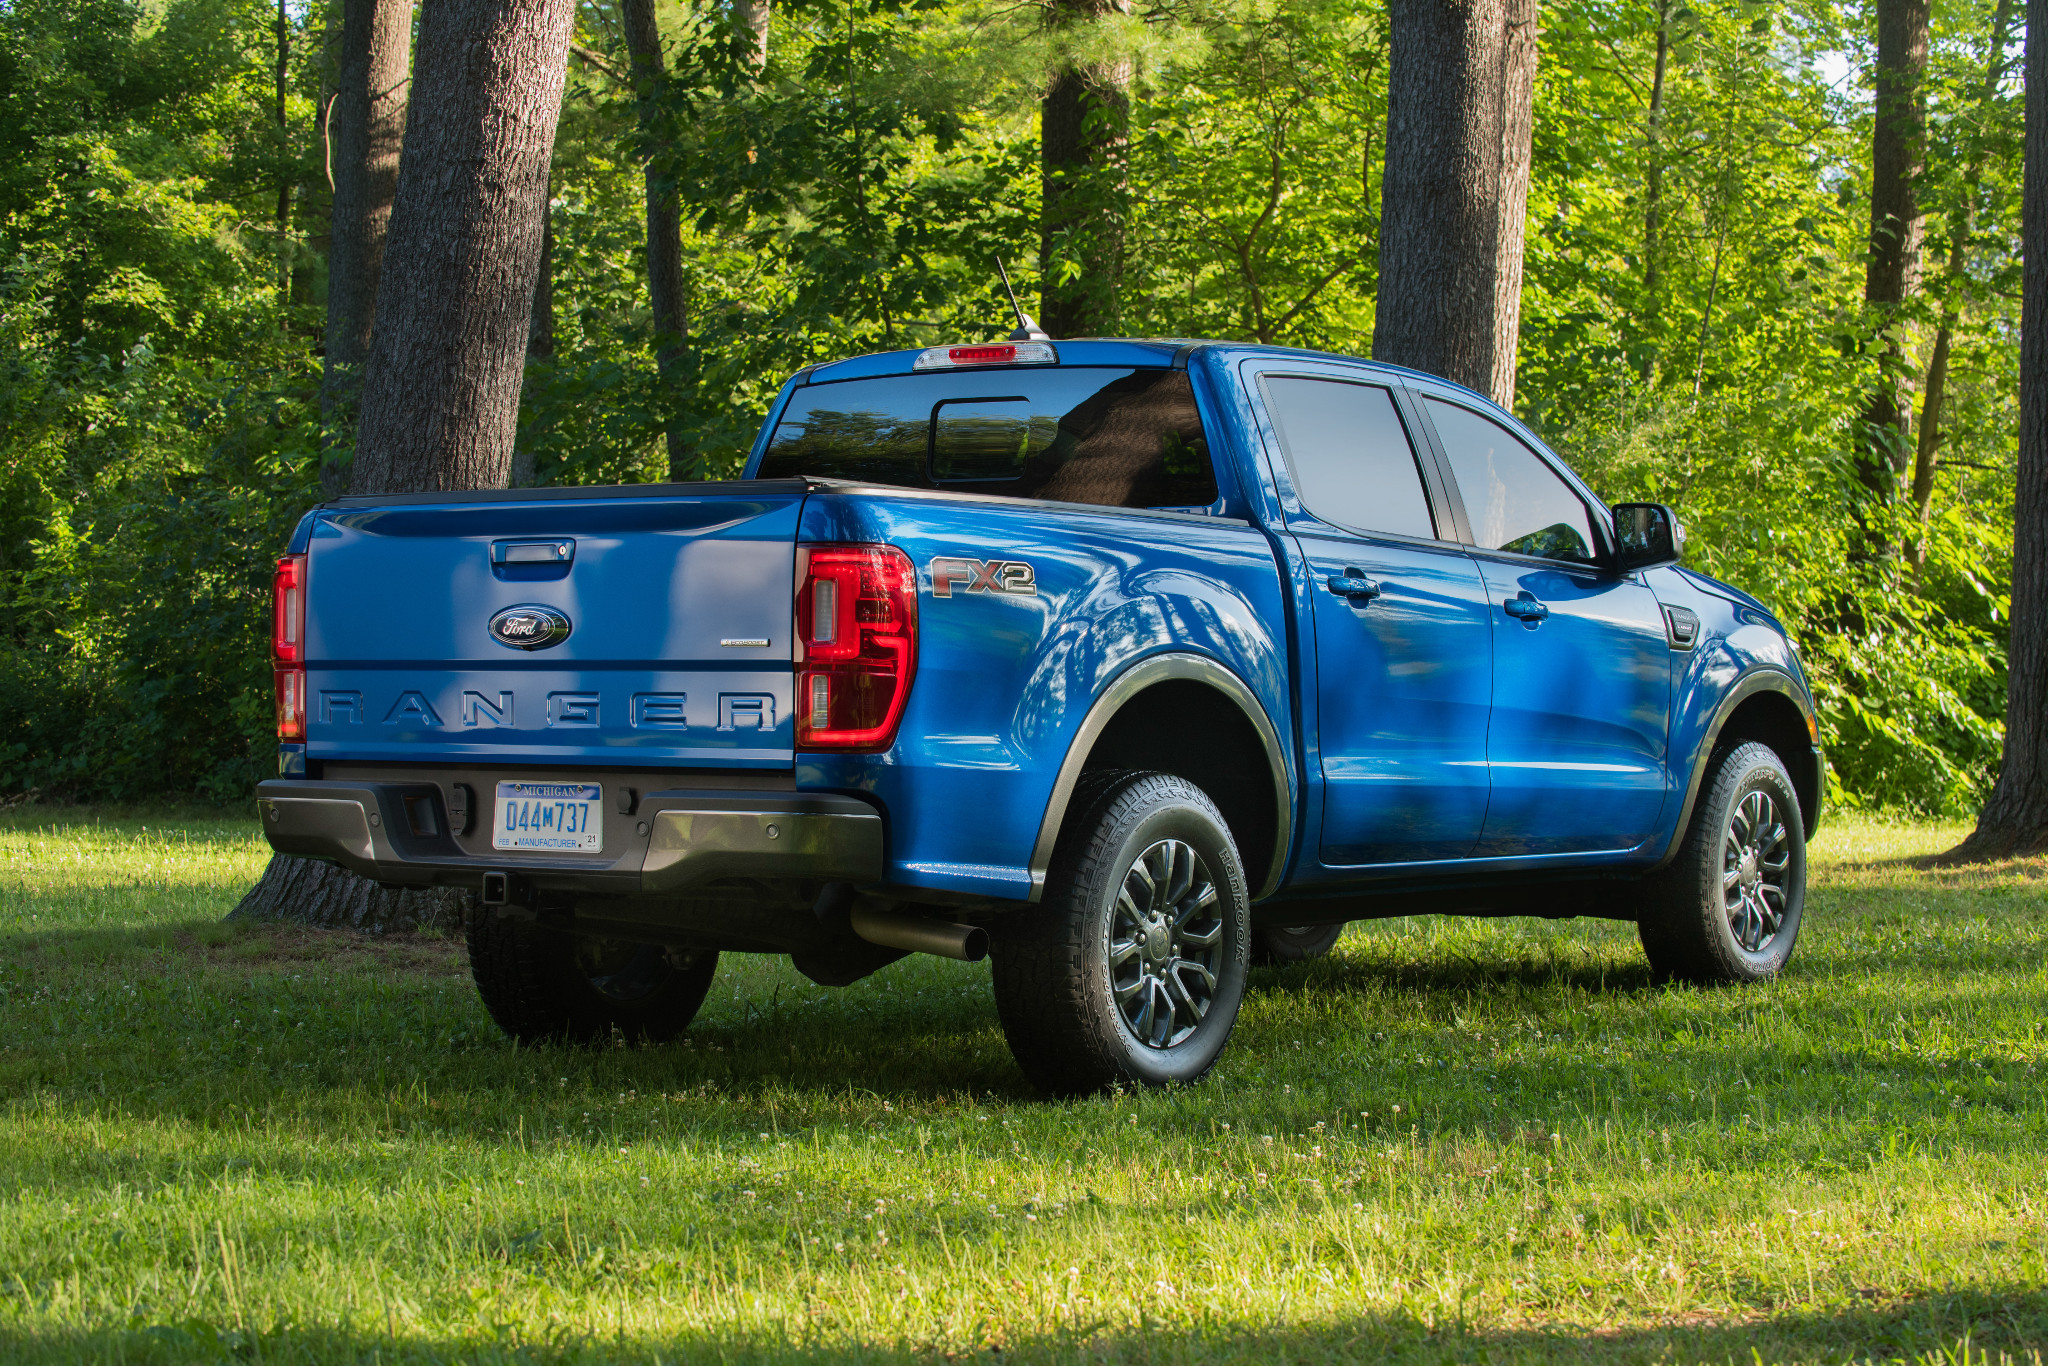 All the Pickup Truck News: Off-Road Ranger, Ram-enstein, Jeep Gladiator Child Safety and More